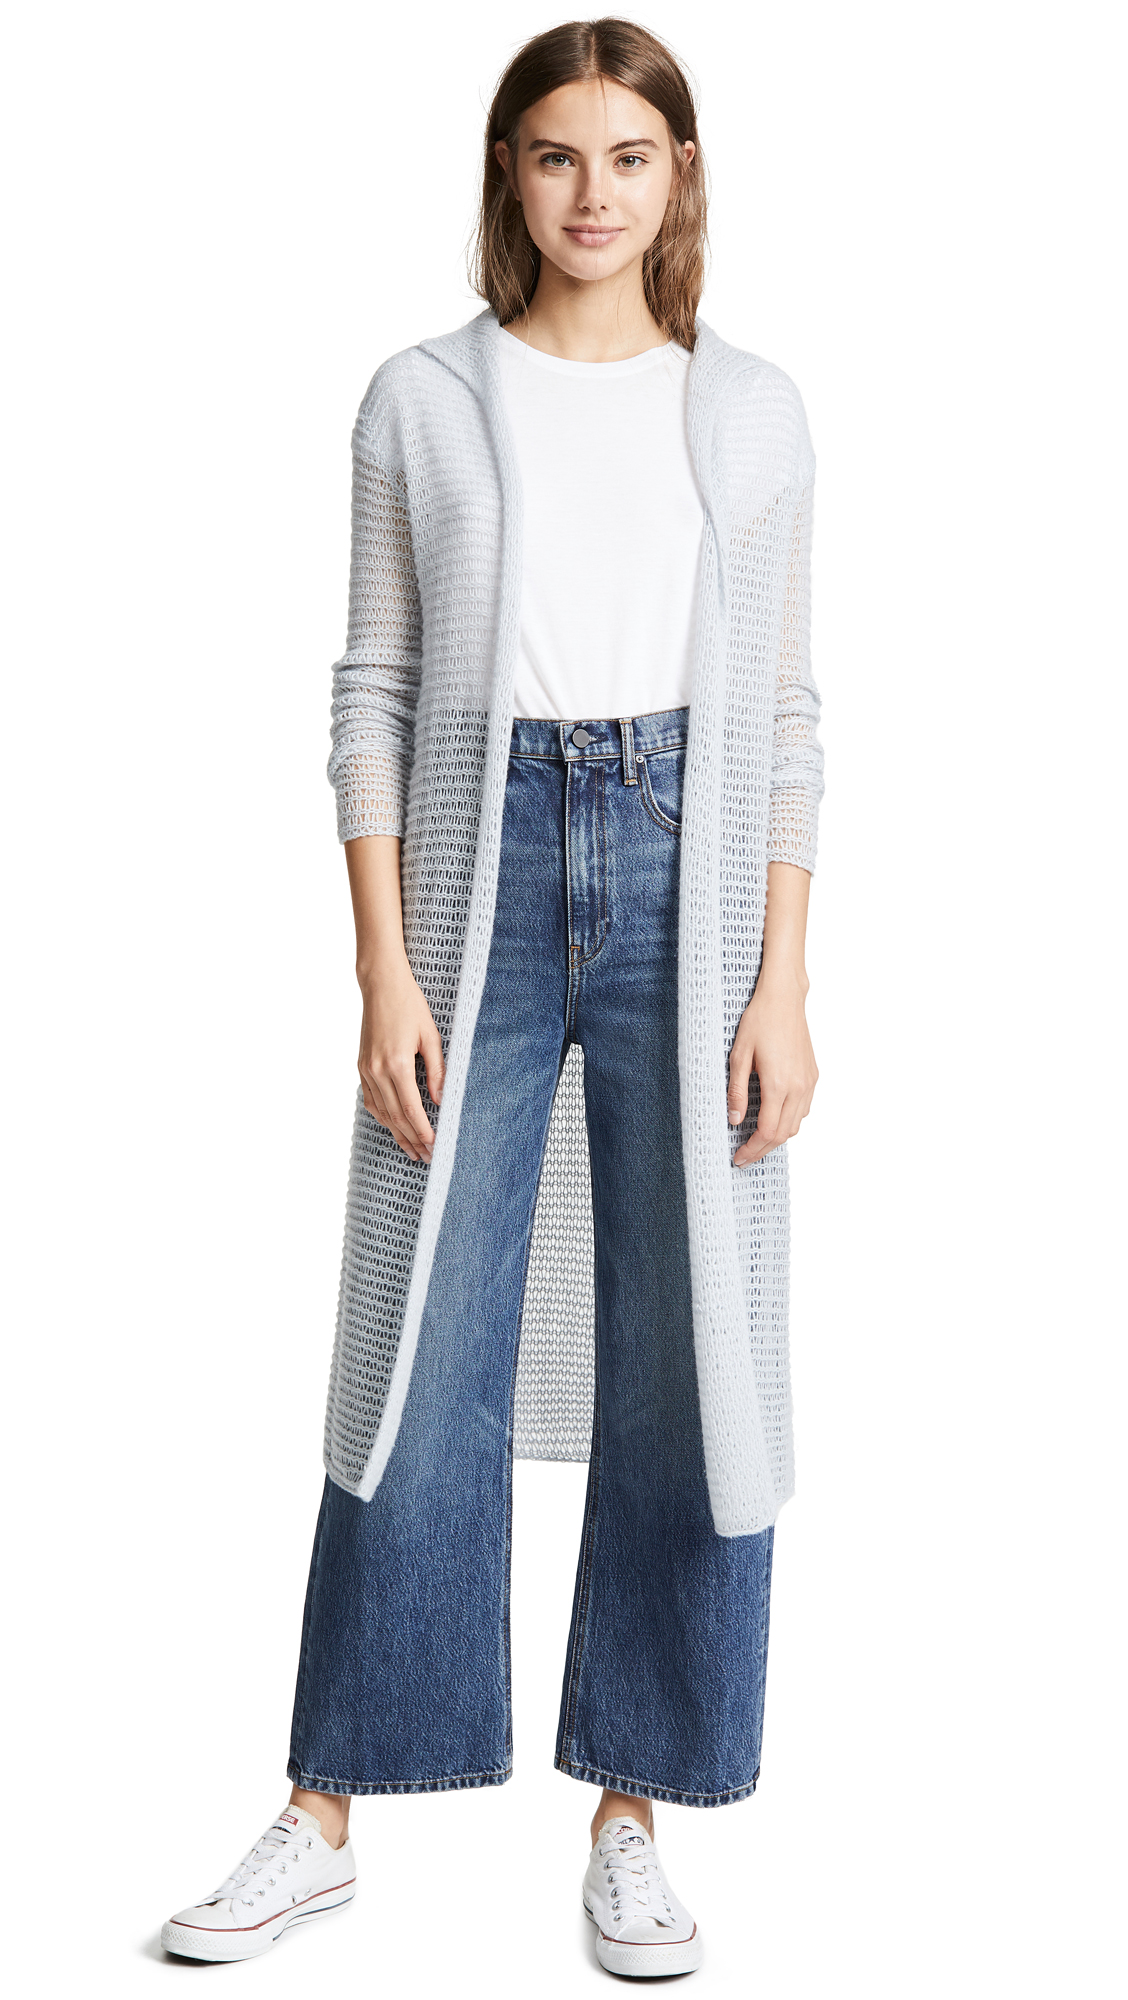 JAMES PERSE OPEN KNIT CASHMERE ROBE